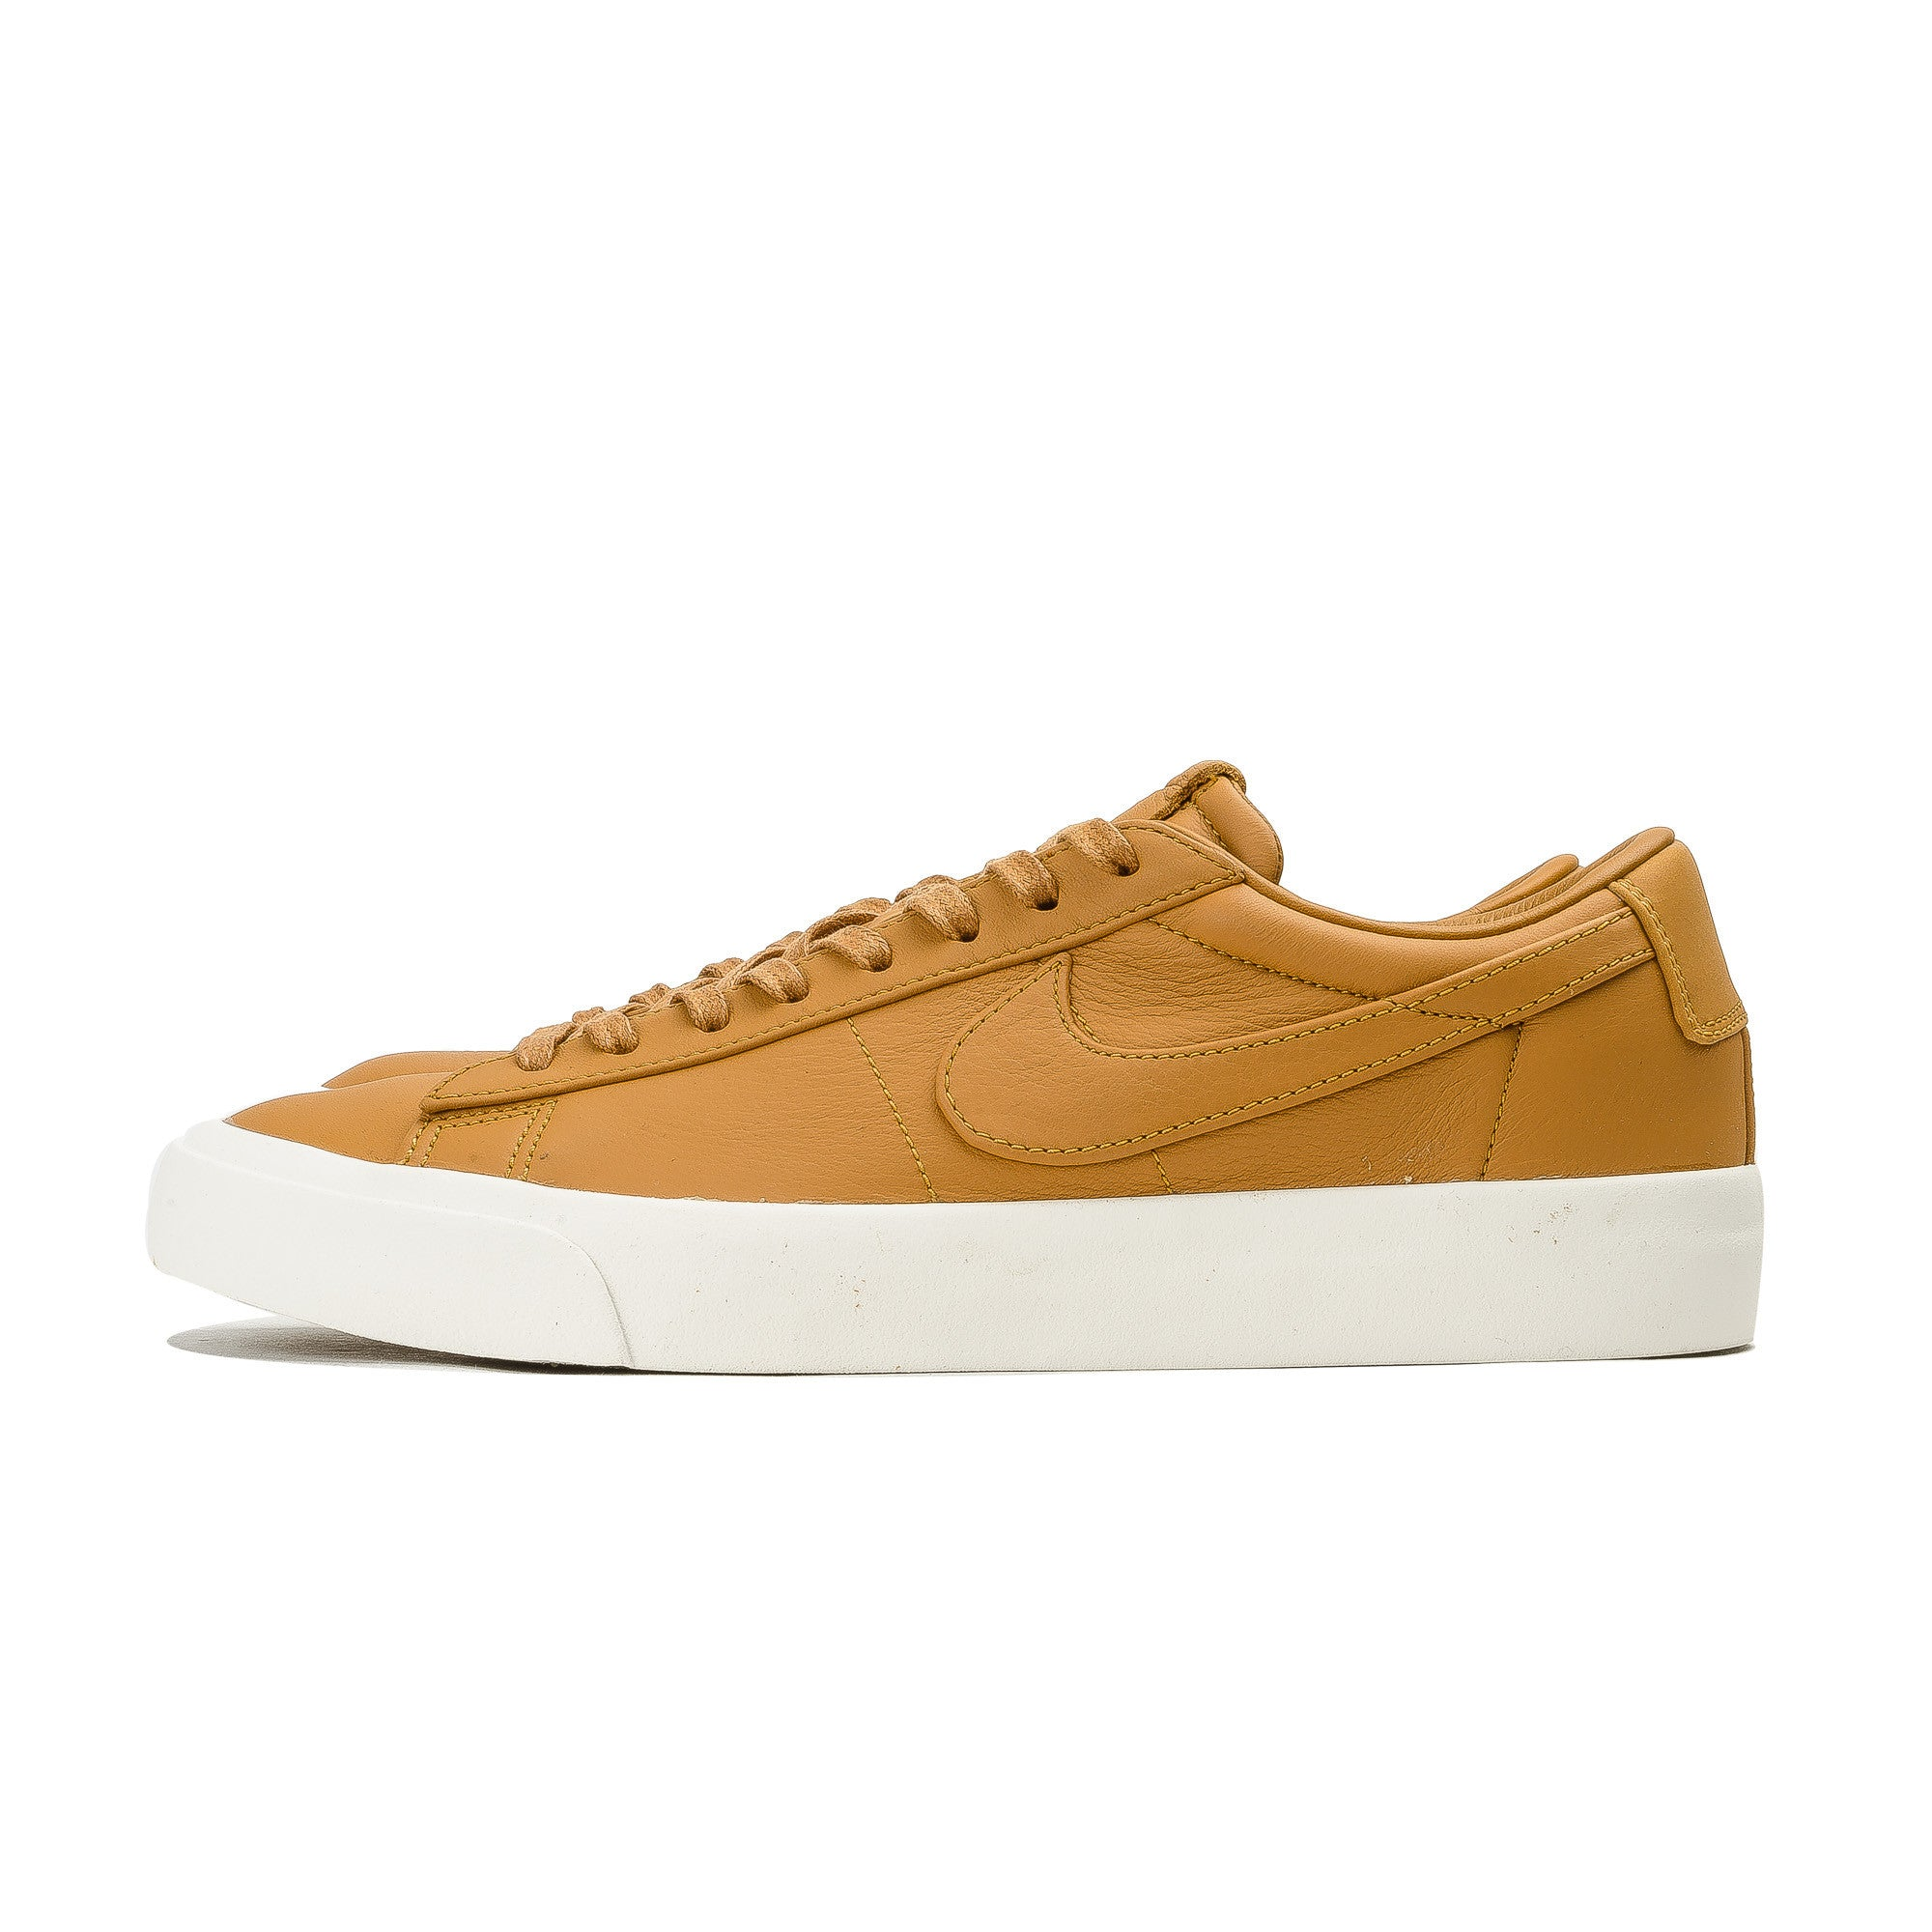 NikeLab Blazer Studio Low 904804-300 Urban Haze